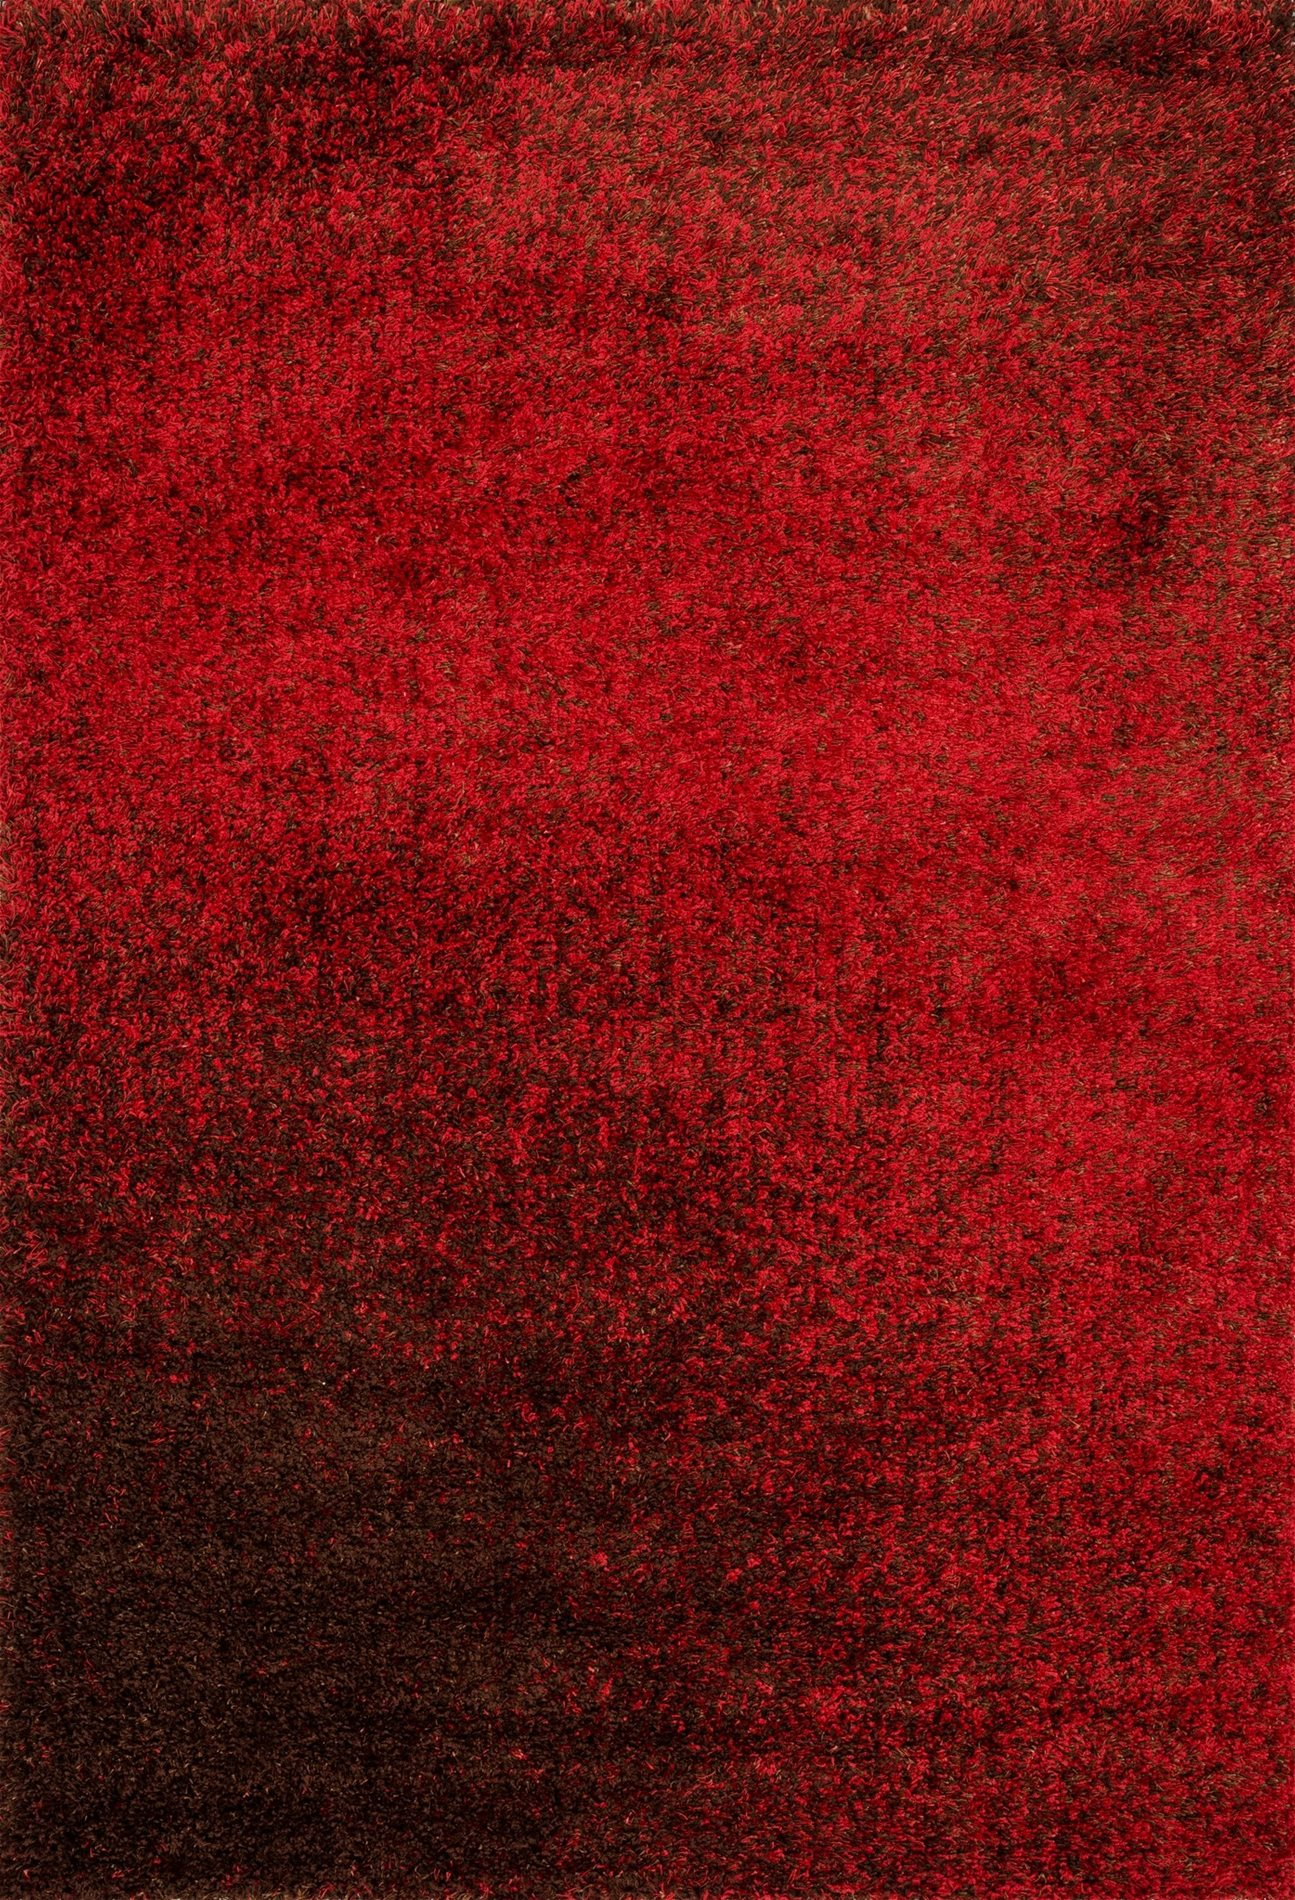 Loloi Rugs Barcbs 01re Barcelona Red Brown Modern Contemporary